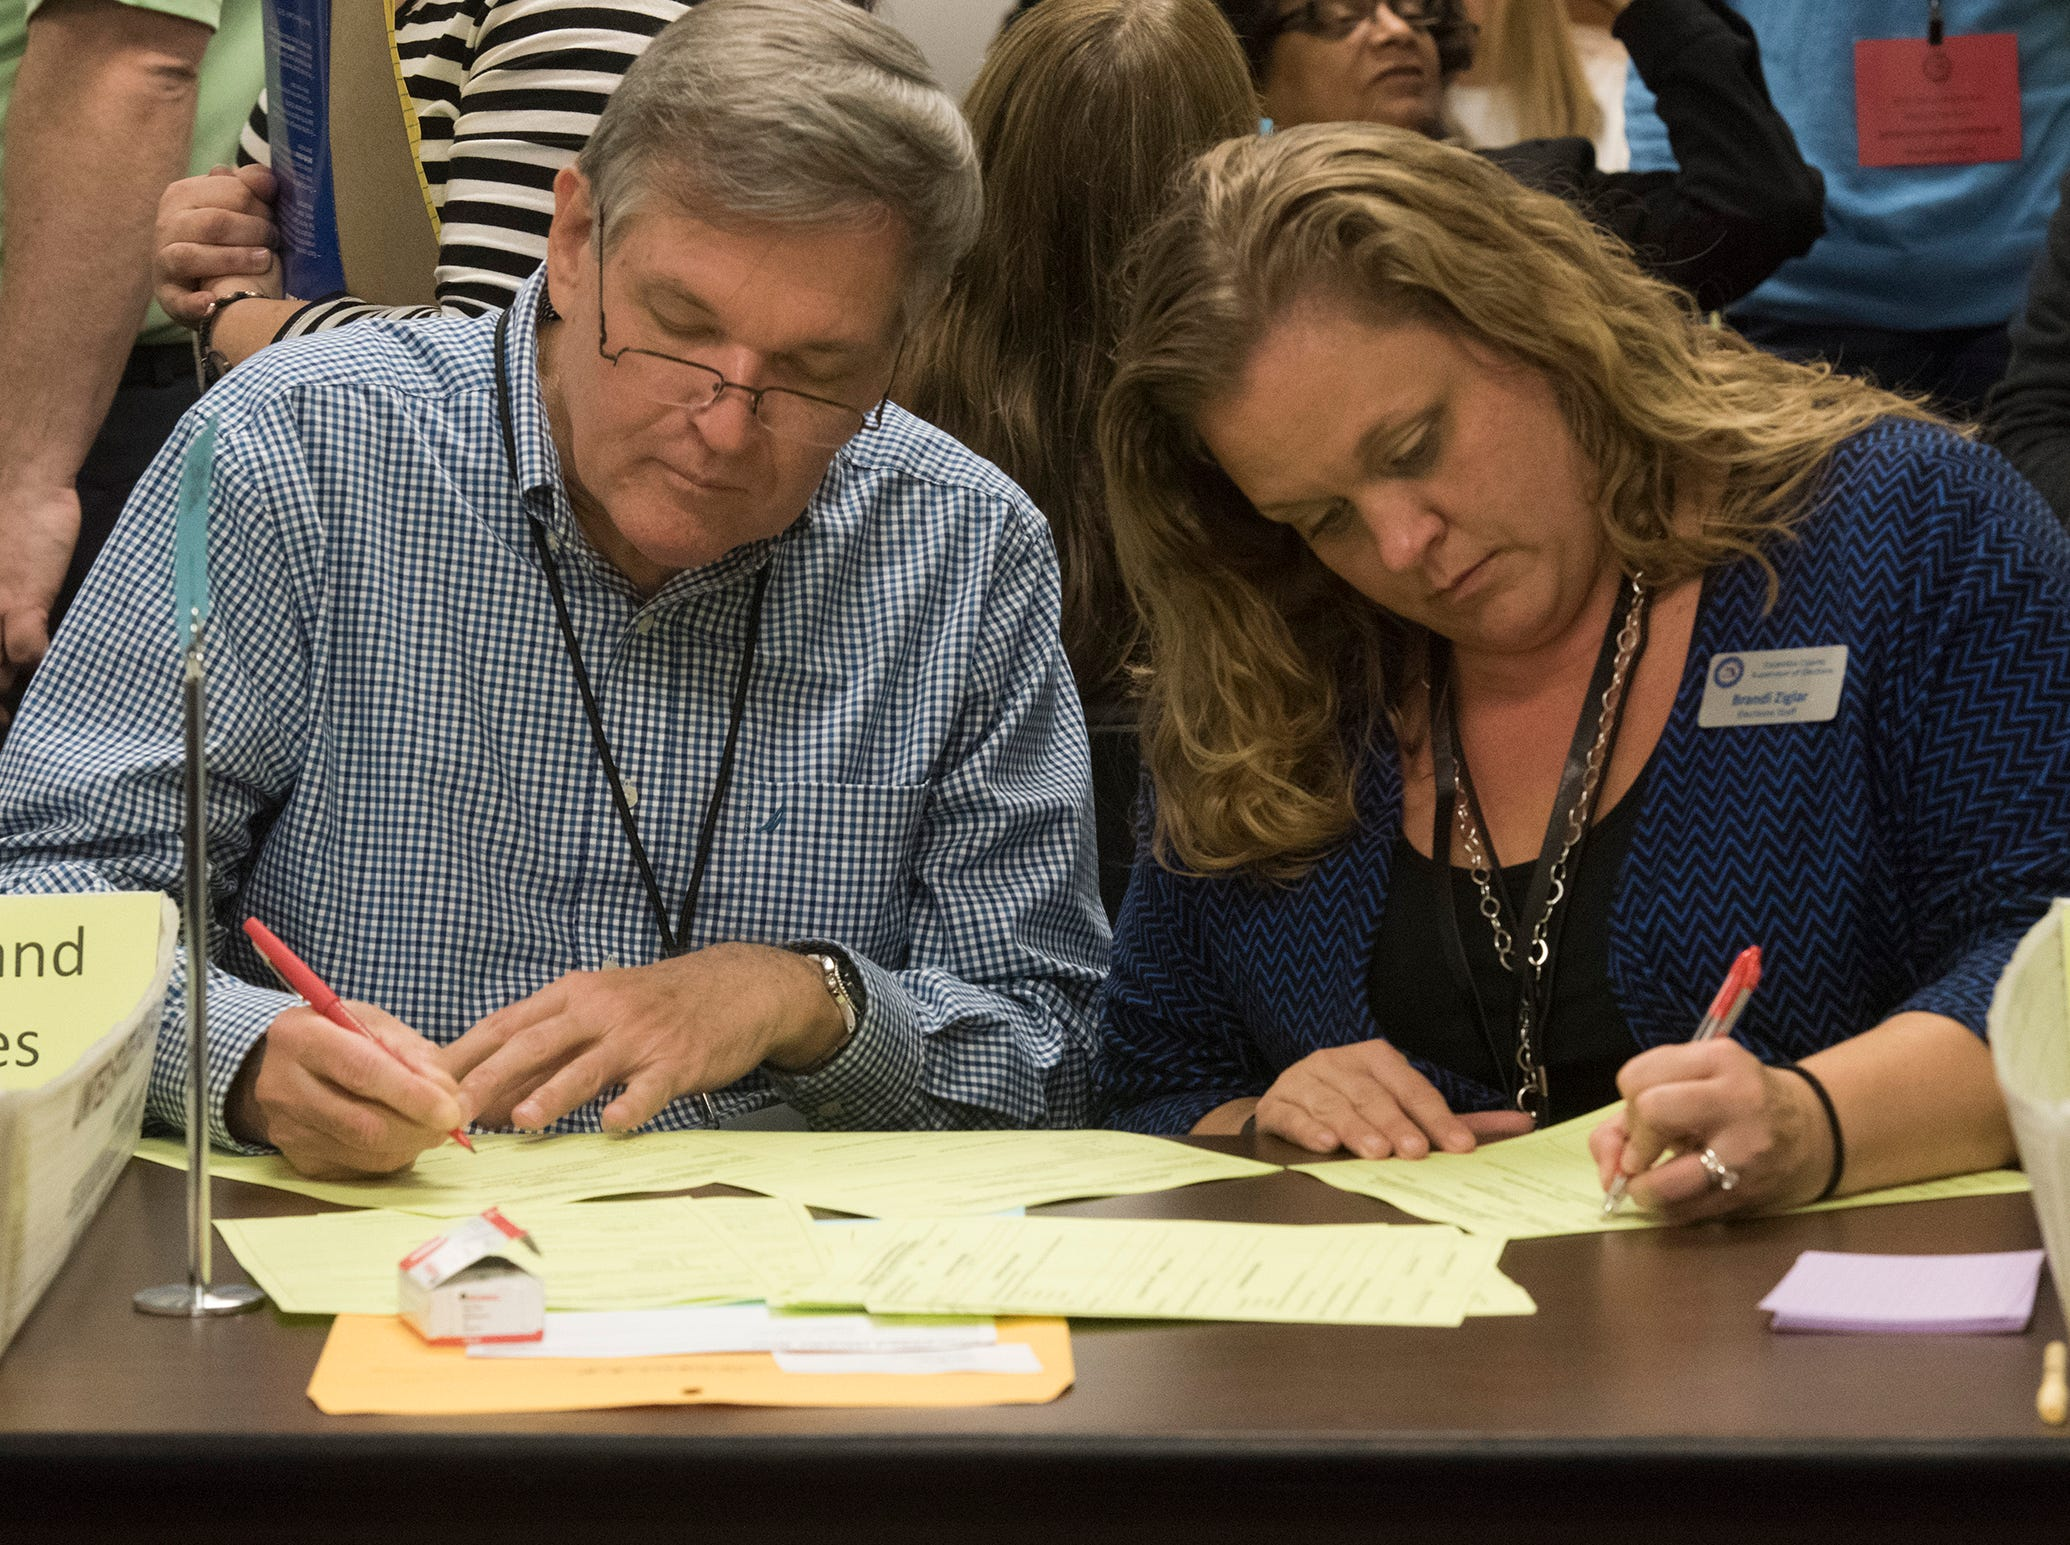 Votes in Escambia County counted by hand